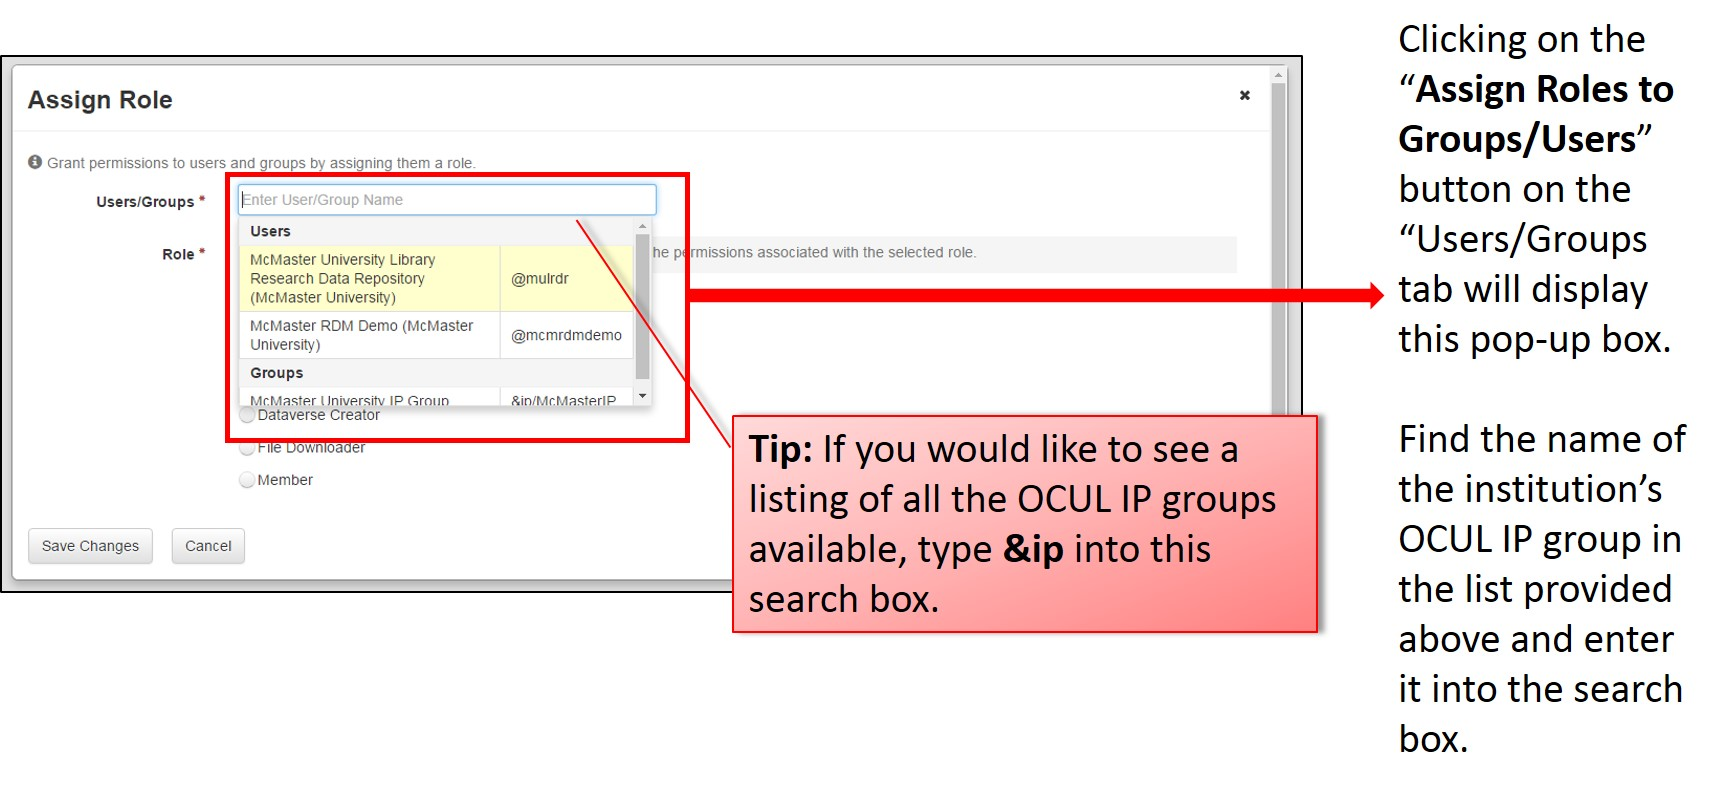 "Clicking on the ""Assign Roles to Groups/Users"" button on the ""Users/Groups tab will display this pop-up box. Find the name of the institution's OCUL IP group in the list provided above and enter it into the search box."